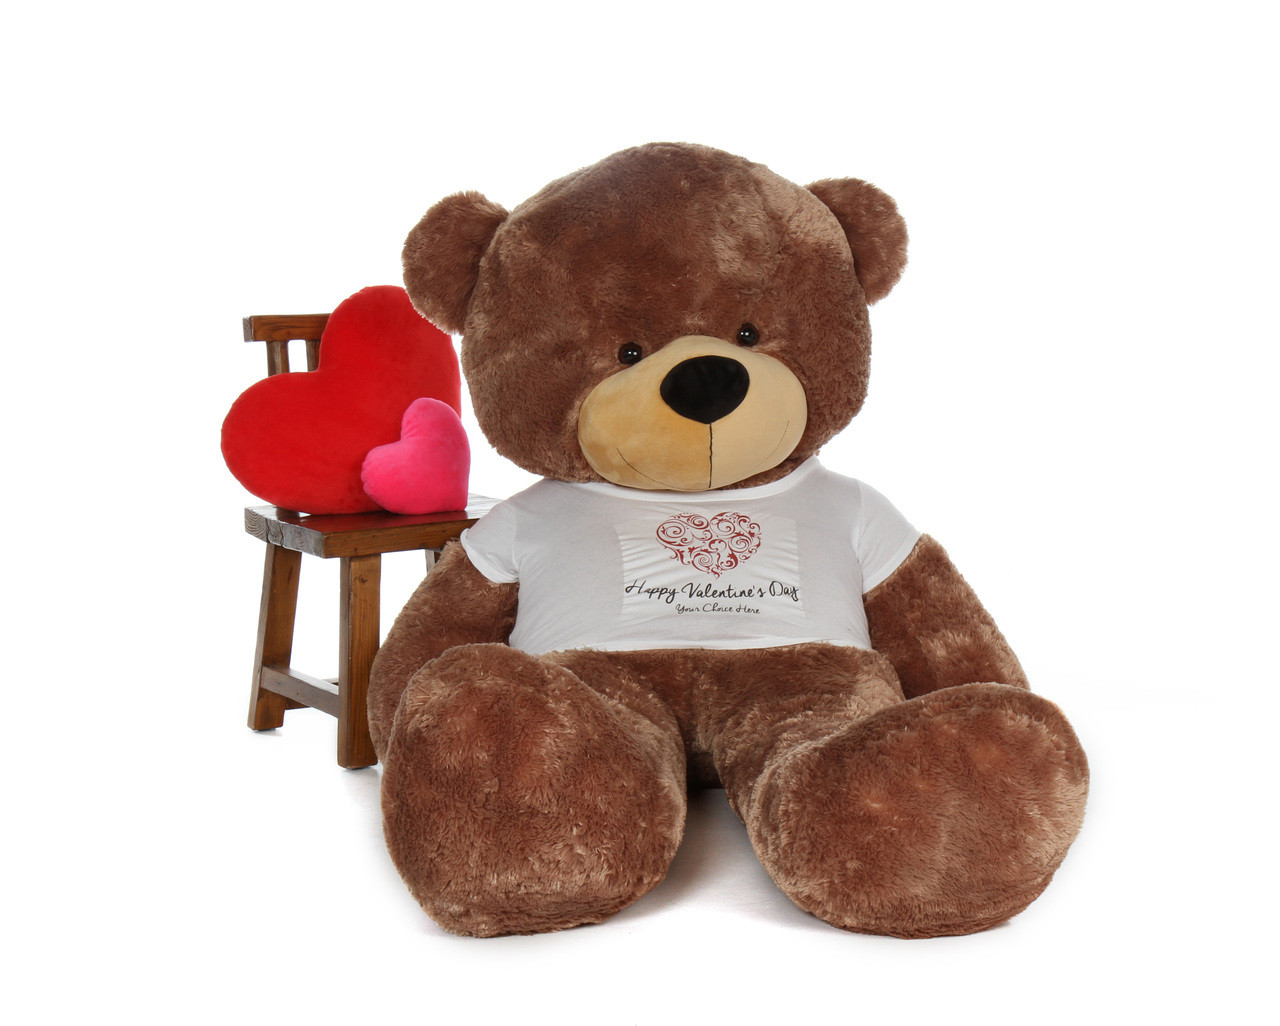 6ft Life Size Happy Valentine S Day Teddy Bears Customize Your Fur